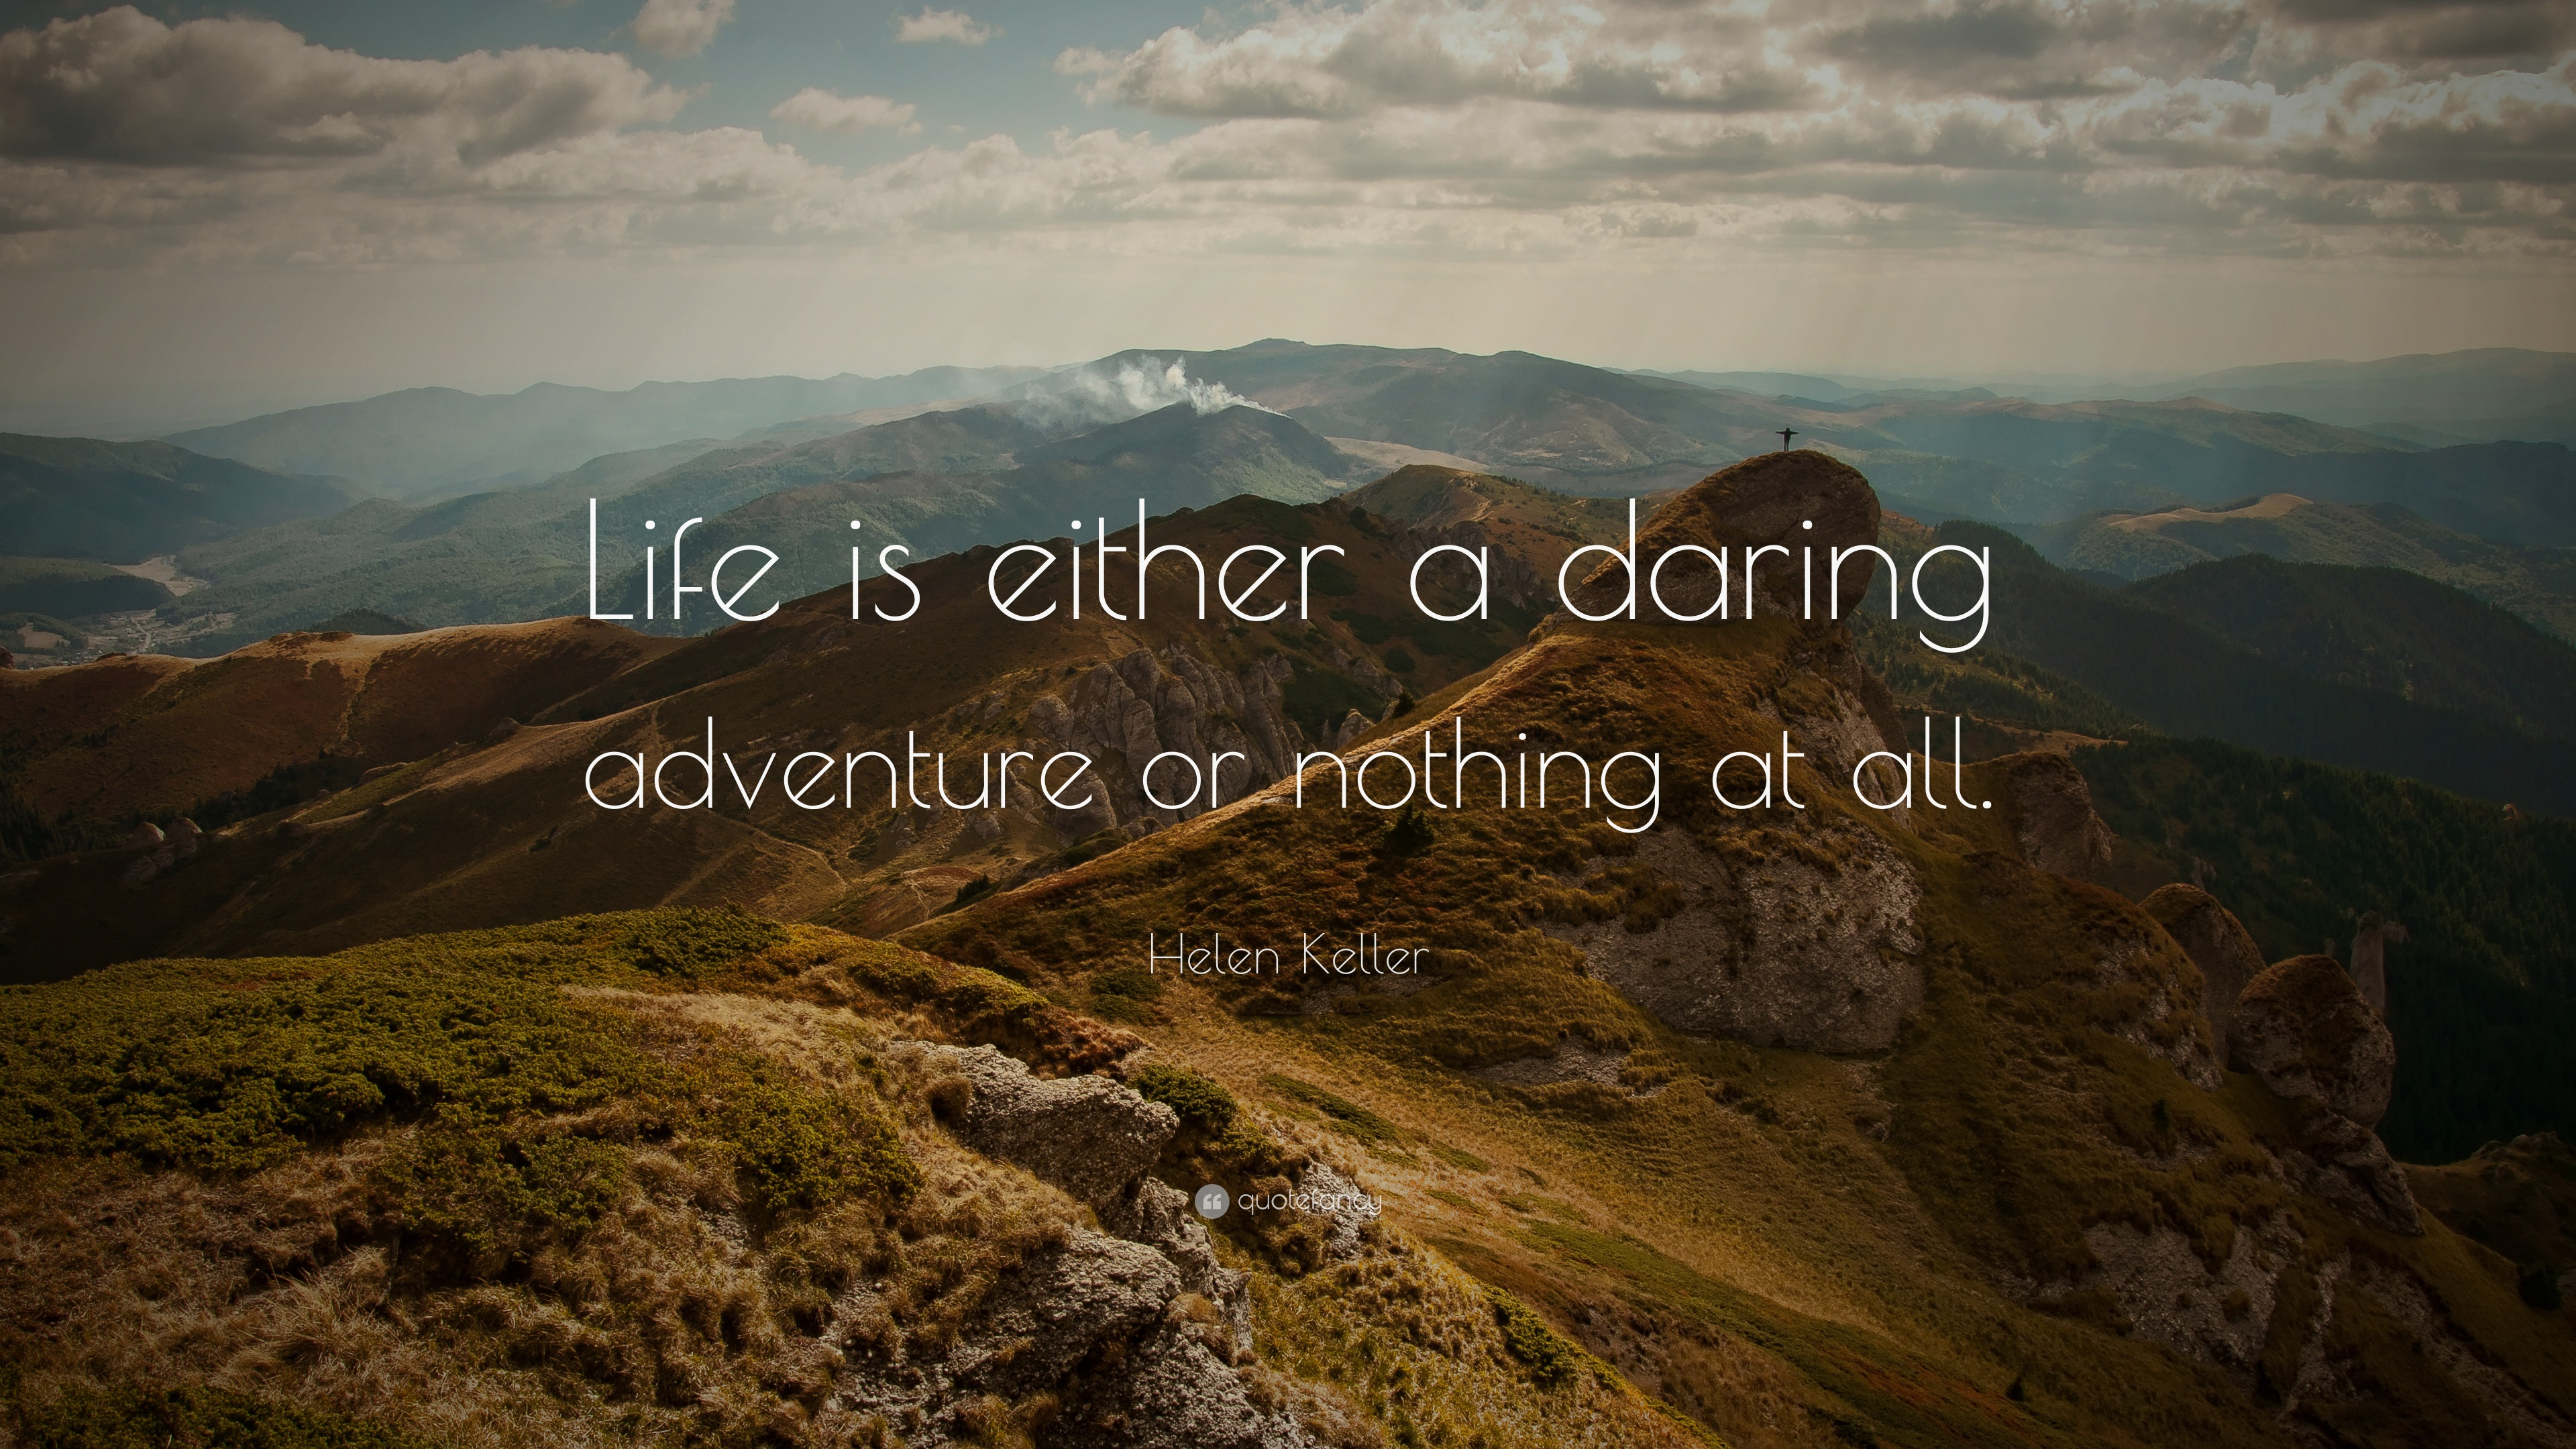 Helen Keller Quote Life Is Either A Daring Adventure Or Nothing At